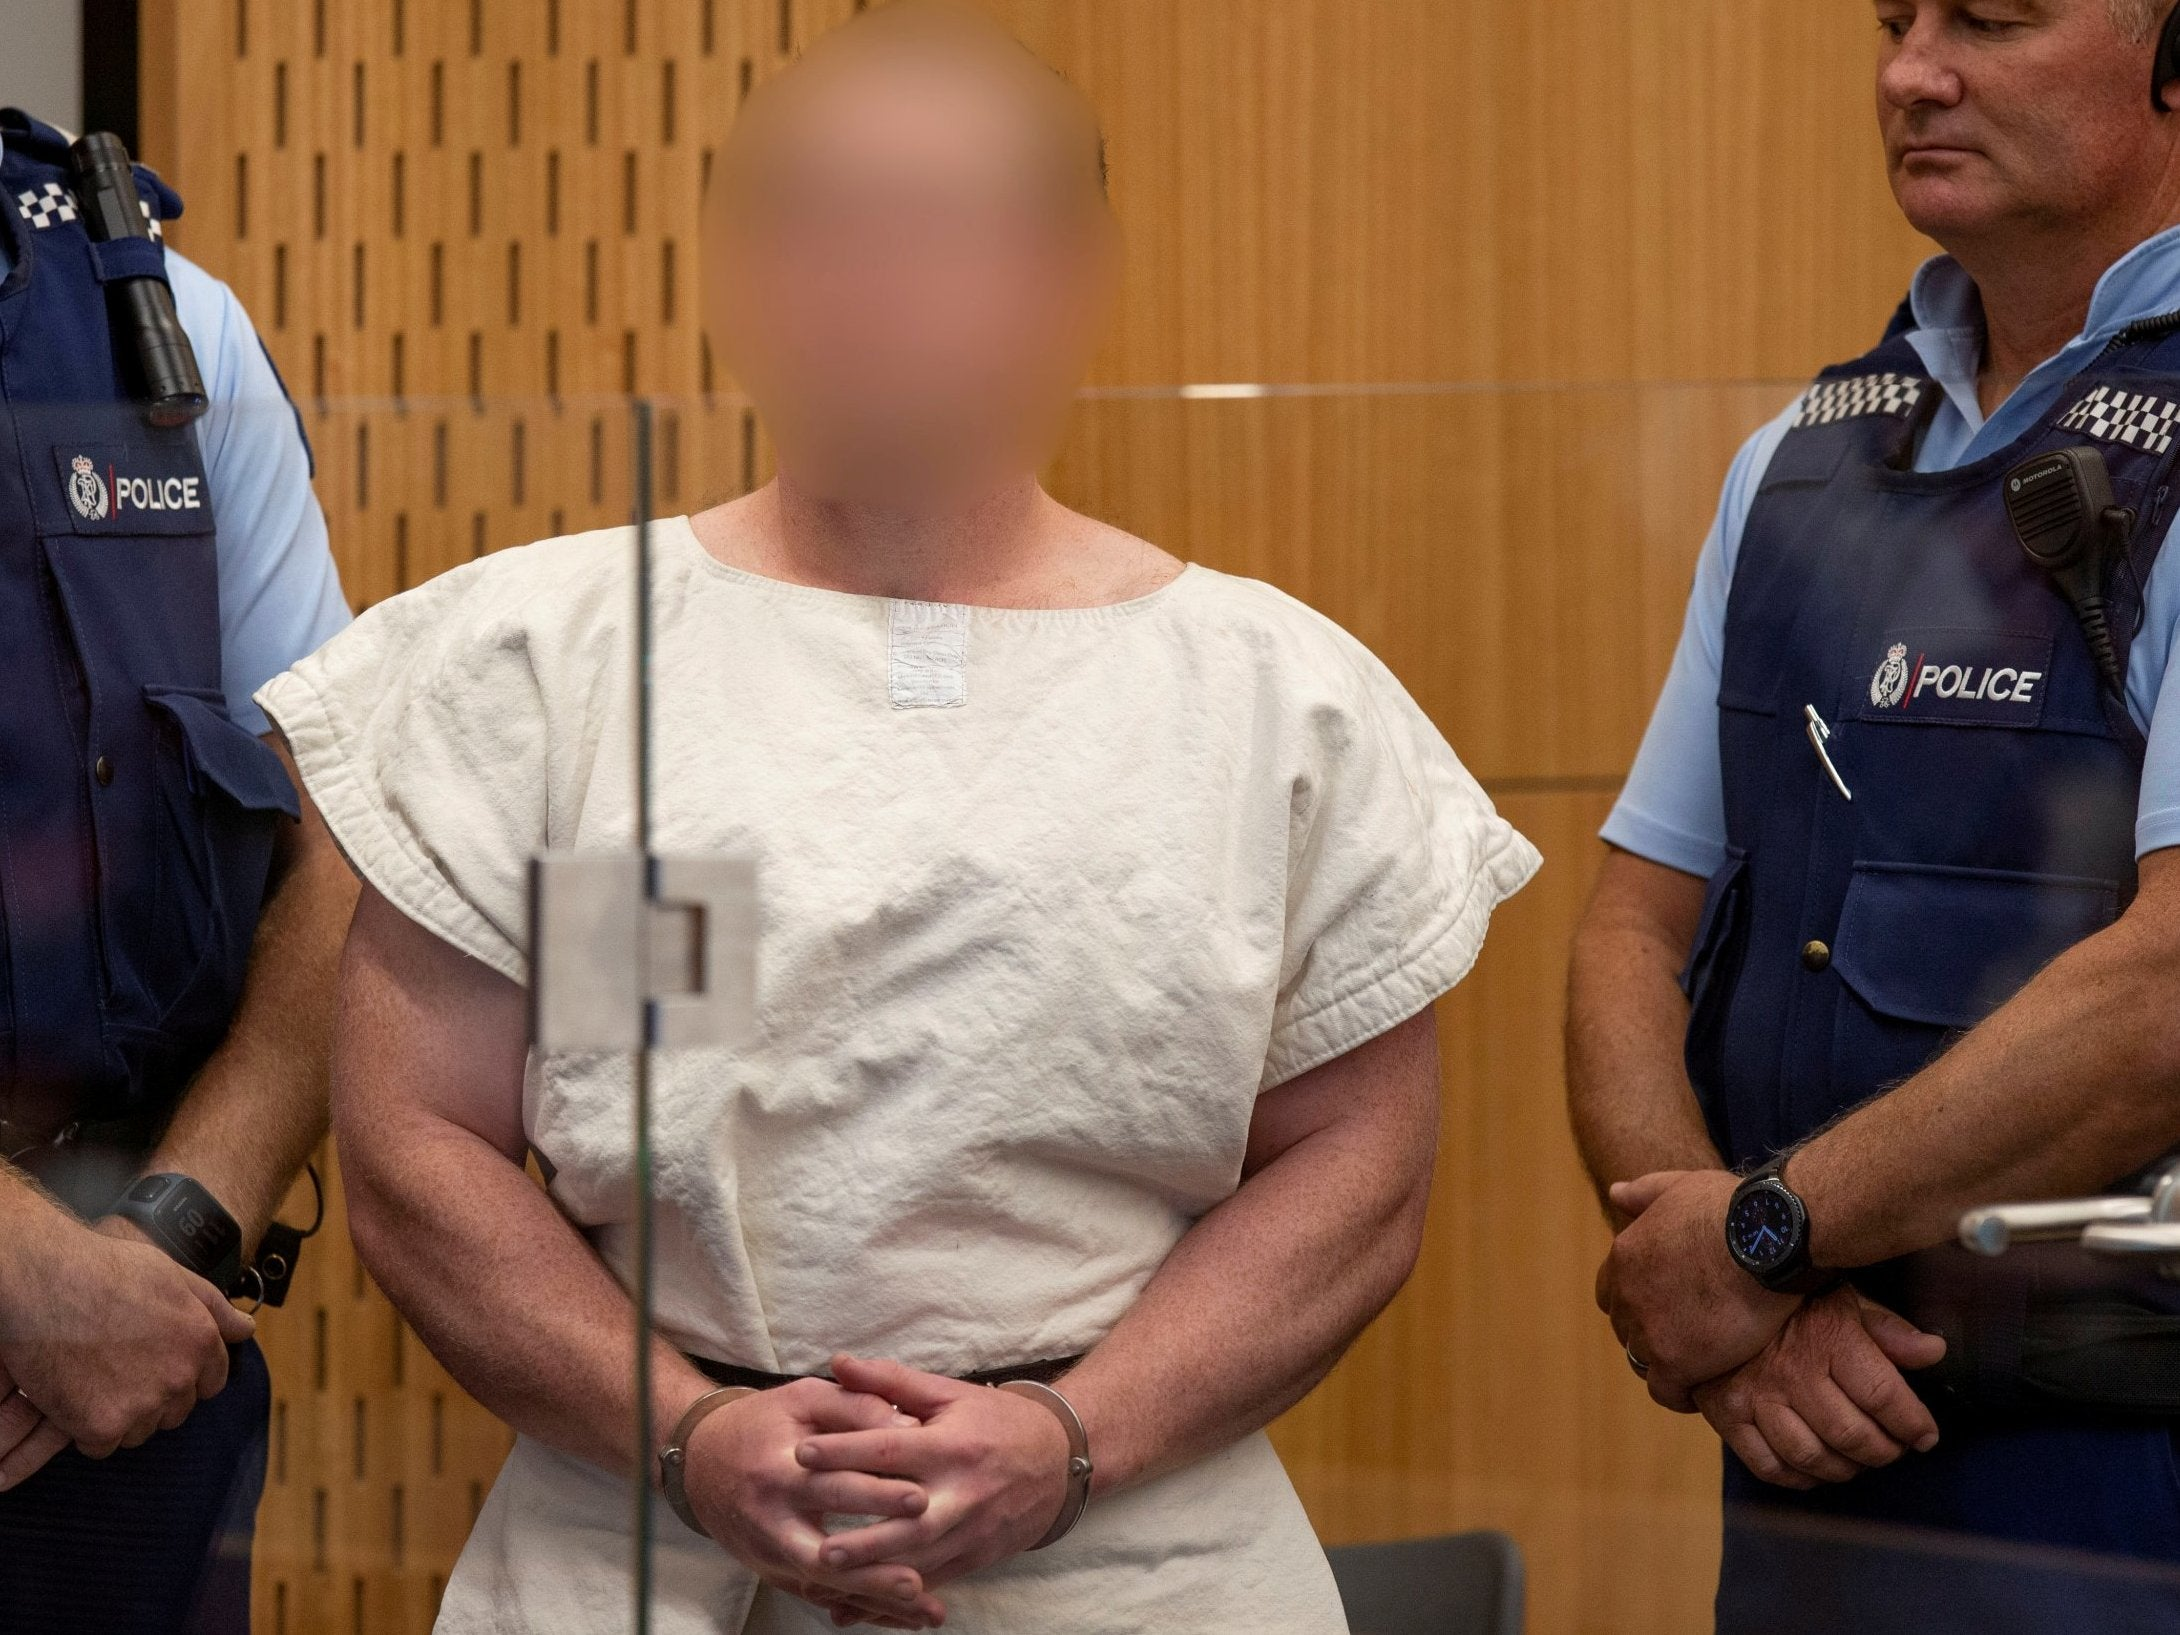 Brenton Tarrant: Christchurch mosque attack suspect ordered to undergo mental health tests